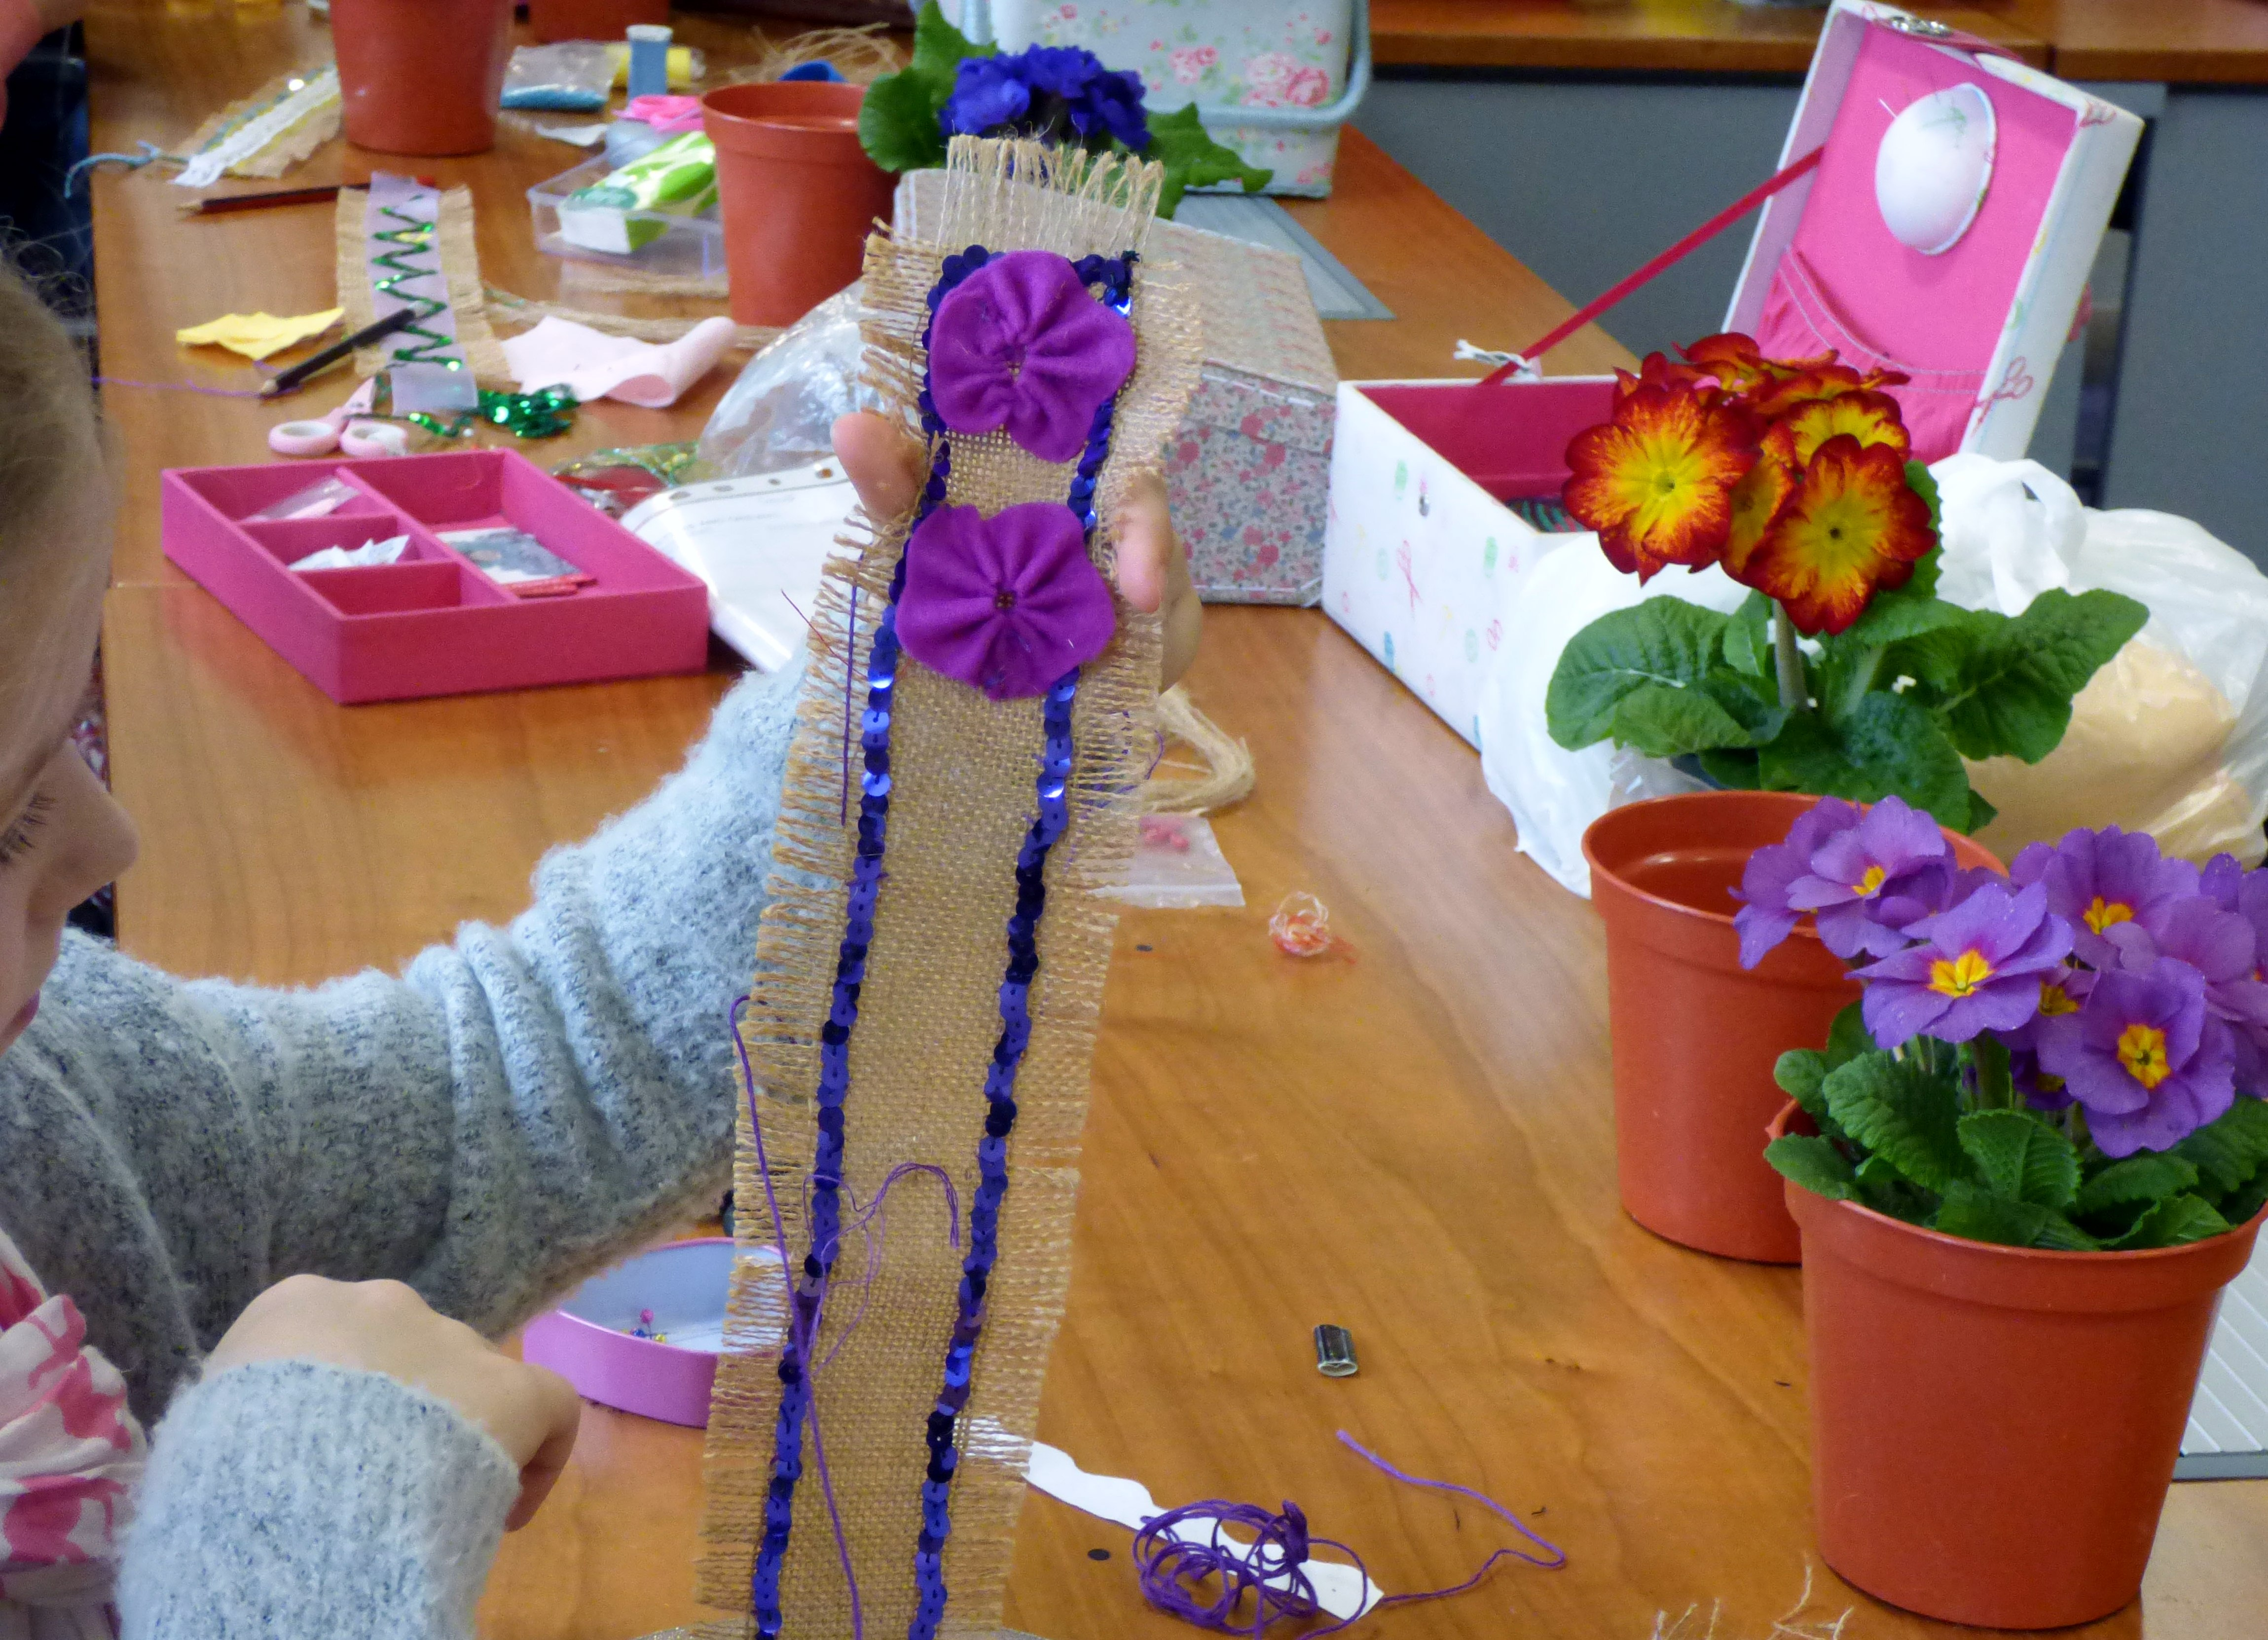 YE are making decorated plant pot bands for Mother's Day